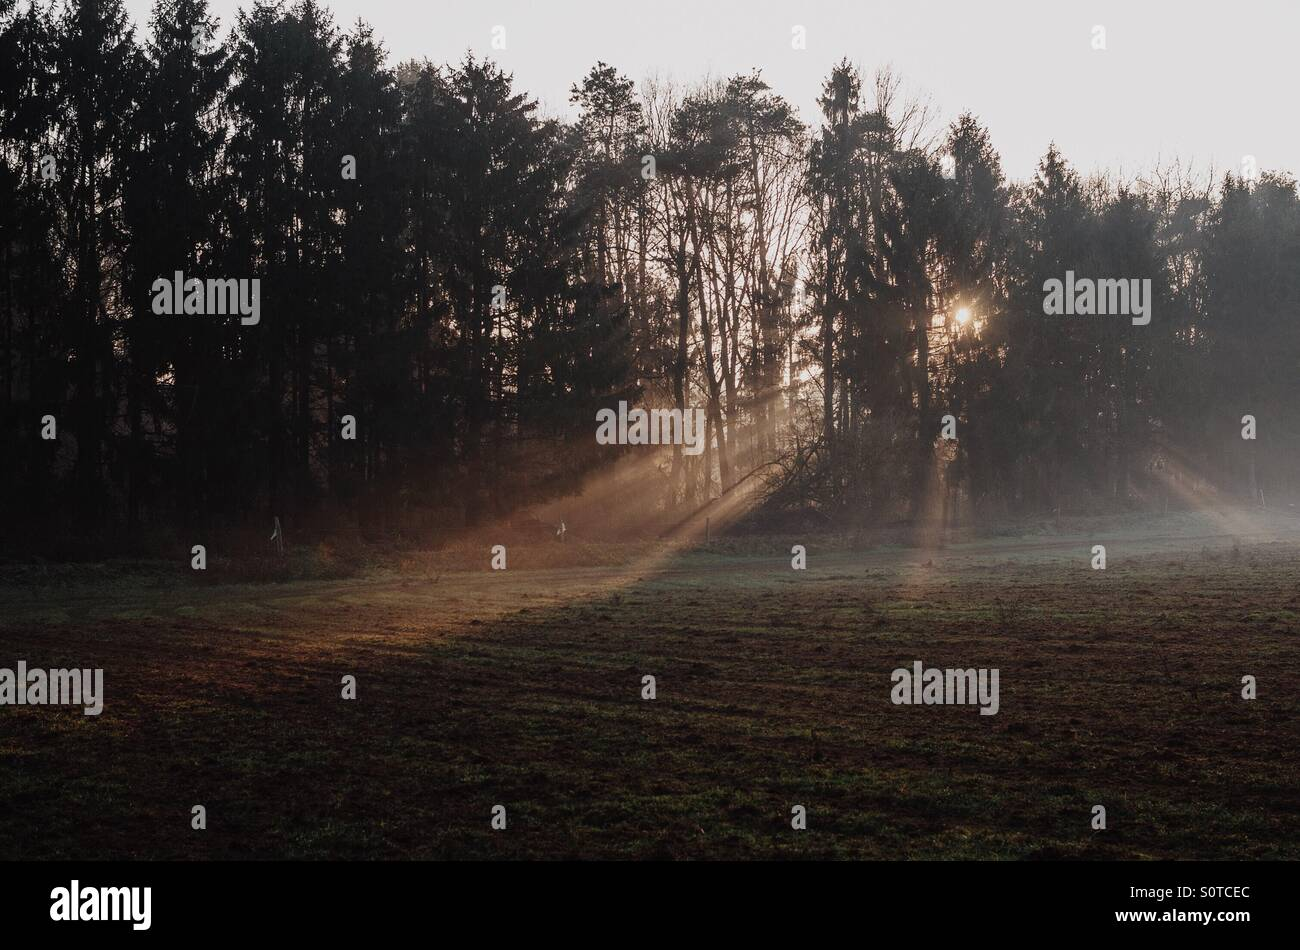 Light beaming through the forest - Stock Image